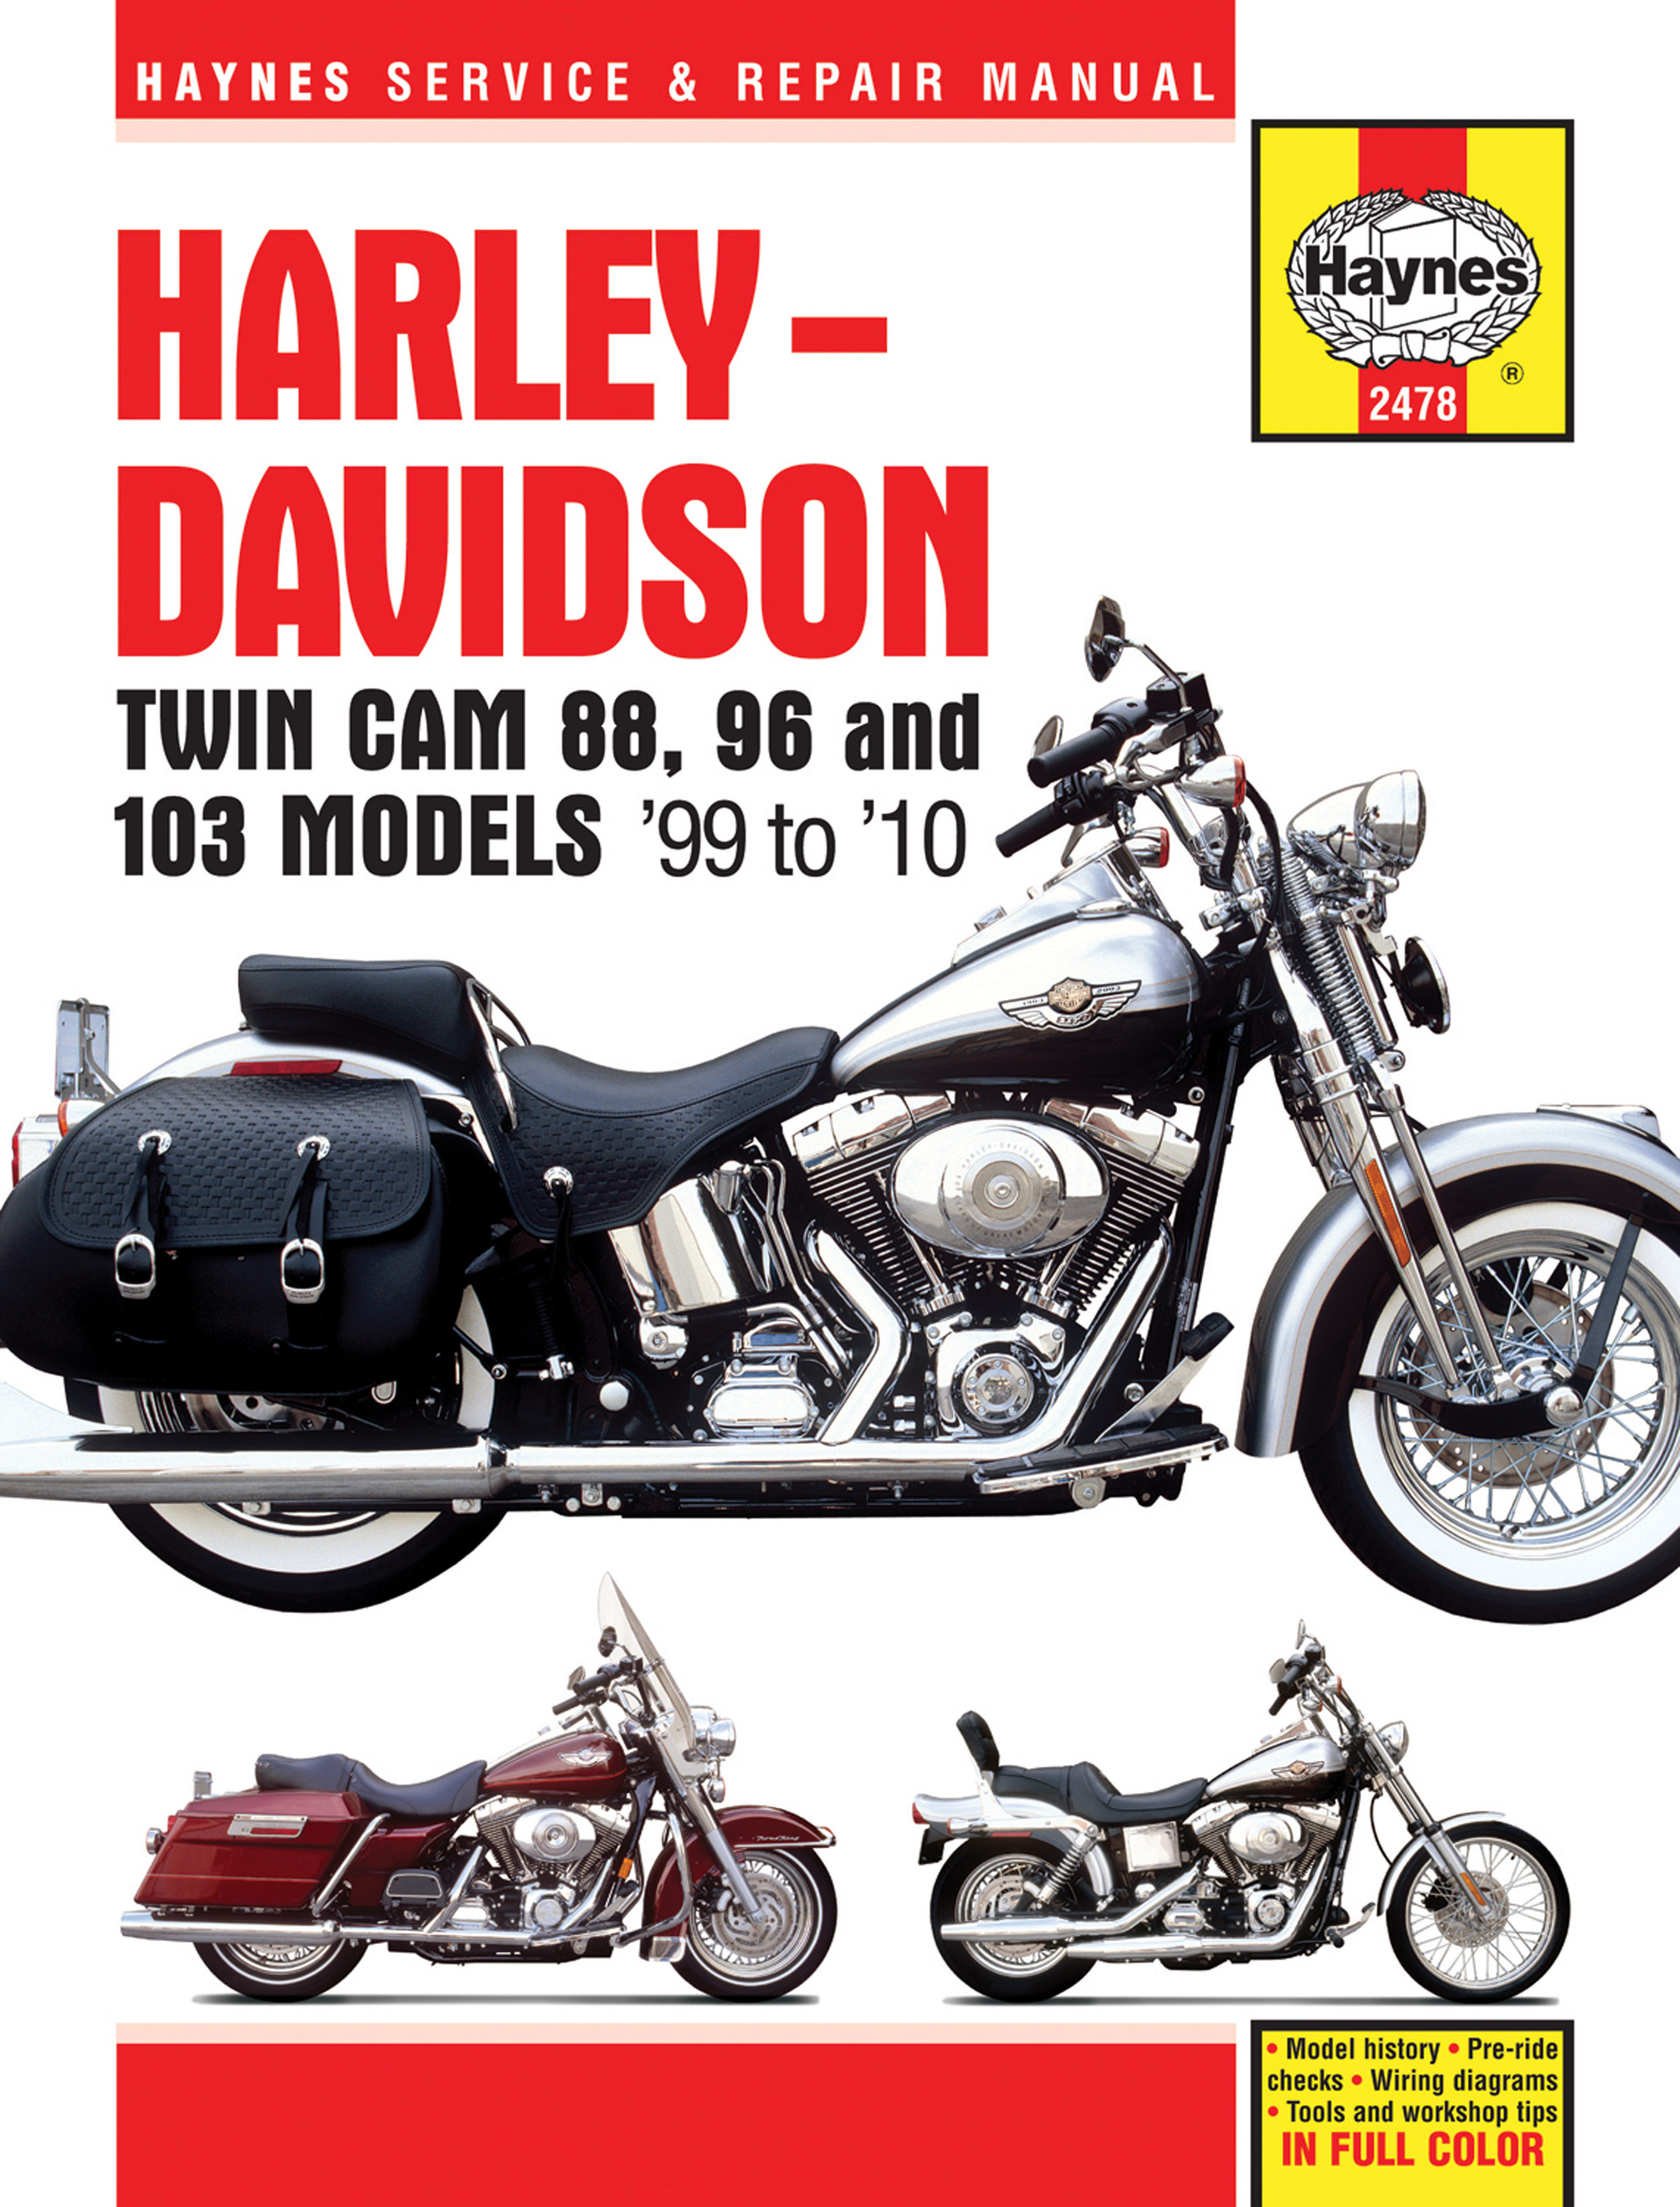 harley davidson twin cam 88 covering softail 00 10 dyna glide 99 rh haynes com 2010 harley softail service manual 2010 softail deluxe service manual